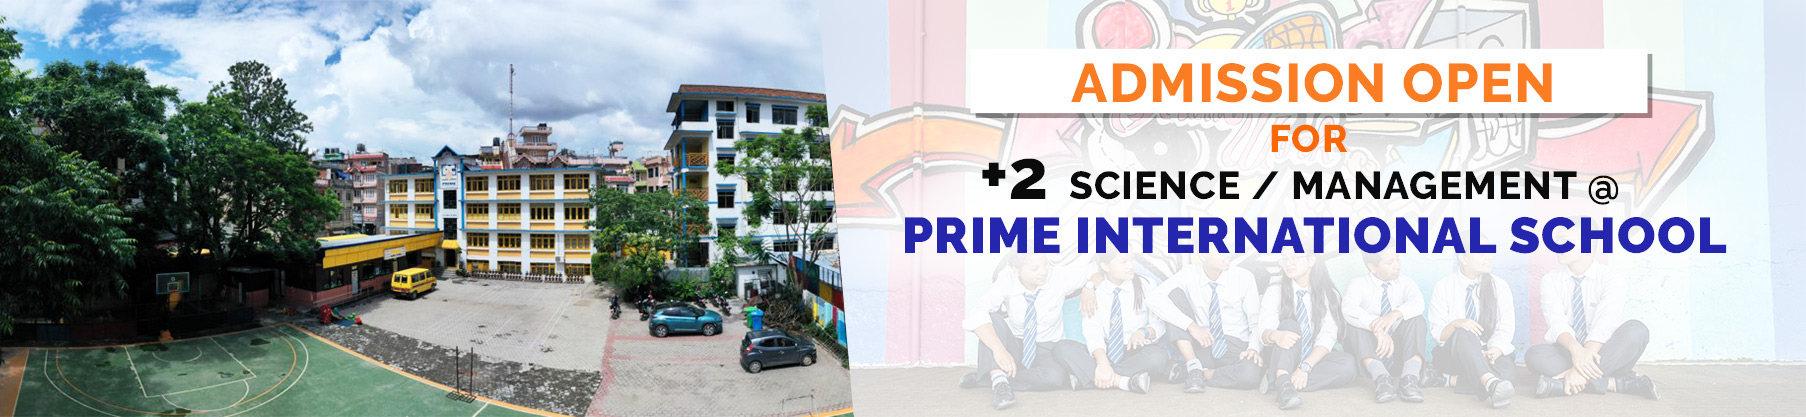 Admissions open for +2 Science and Management at Prime International School